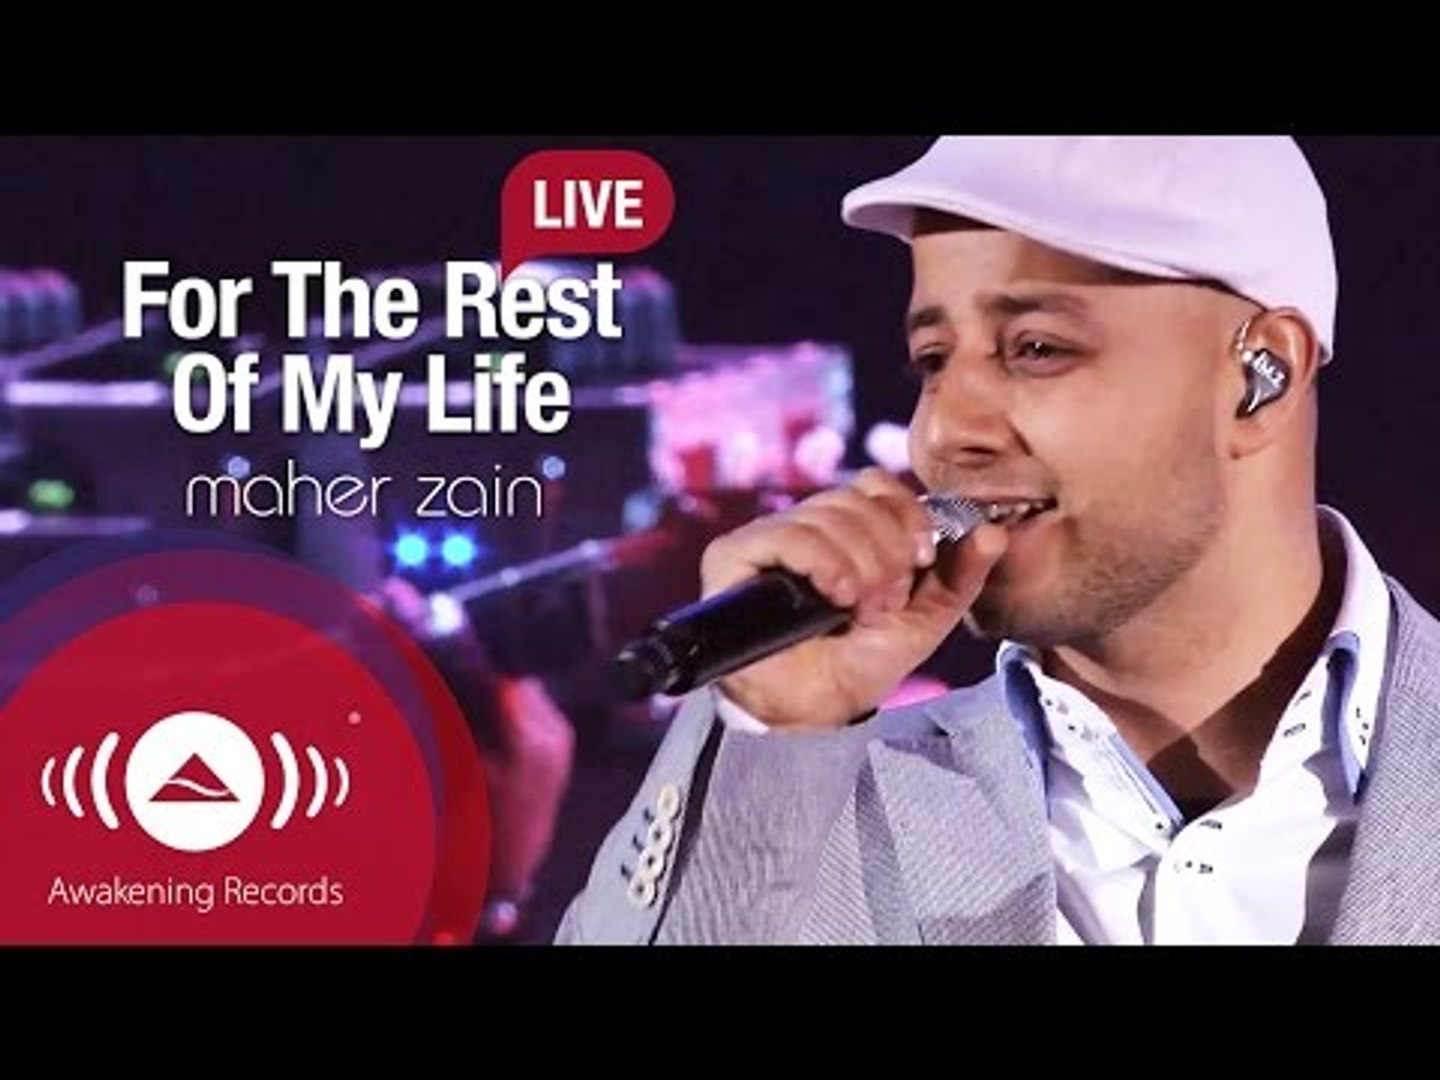 Maher Zain - For The Rest Of My Life   Awakening Live At The London Apollo